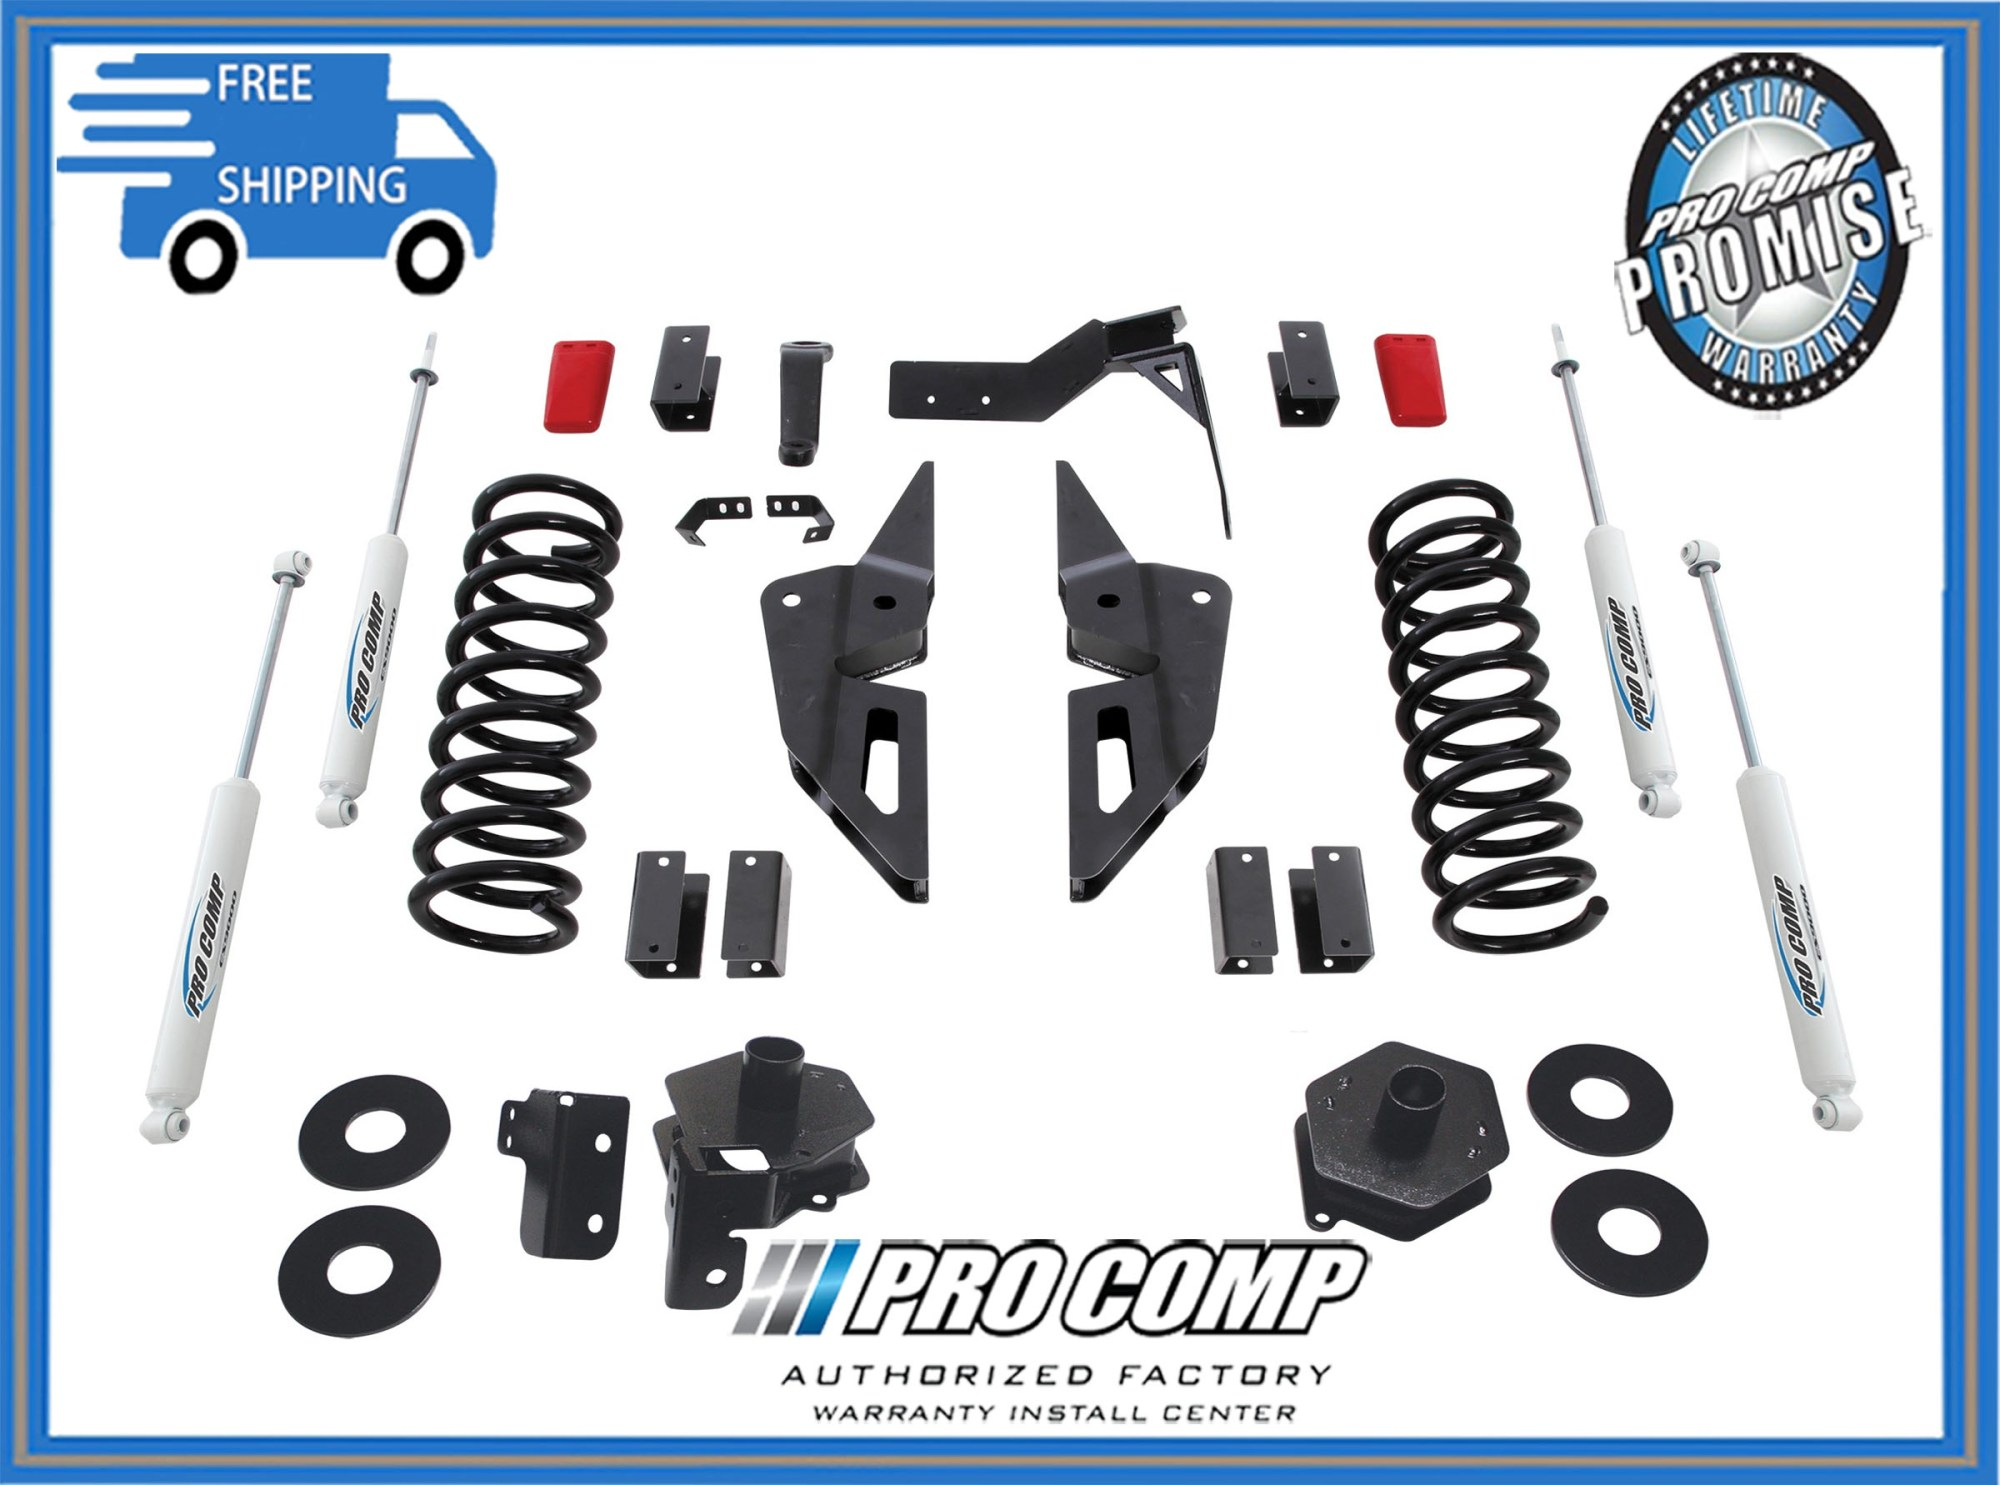 hight resolution of 4 pro comp stage ii suspension lift kit 2014 2017 dodge ram gas motor 2500 4x4